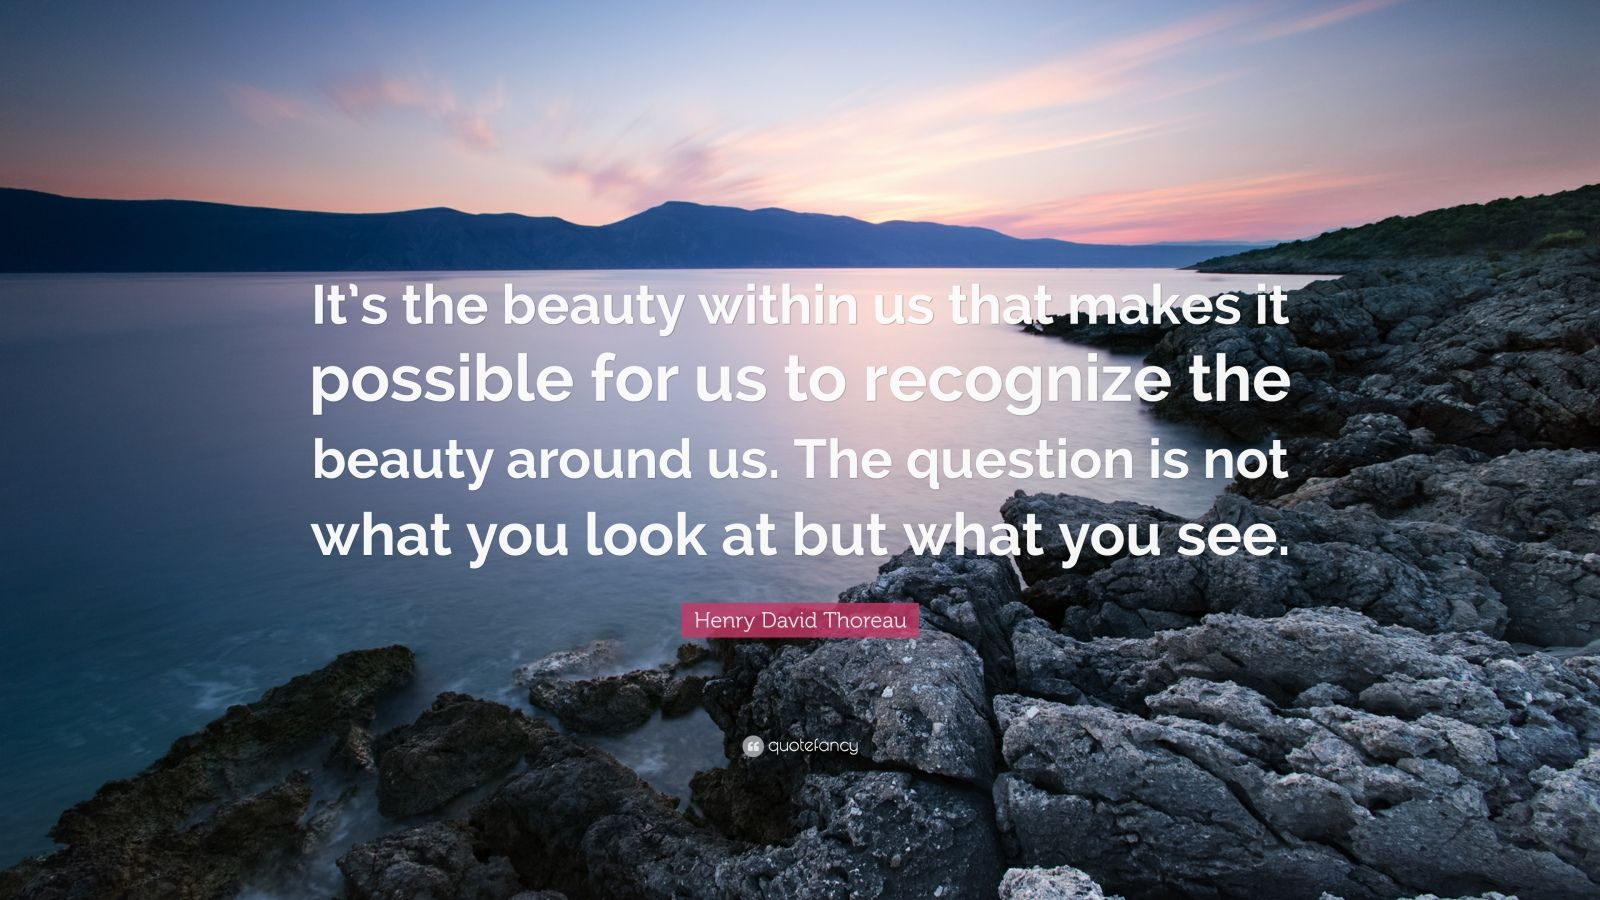 """Henry David Thoreau Quote: """"It's the beauty within us that makes it possible for us to recognize the beauty around us. The question is not what you look at but what you see."""""""